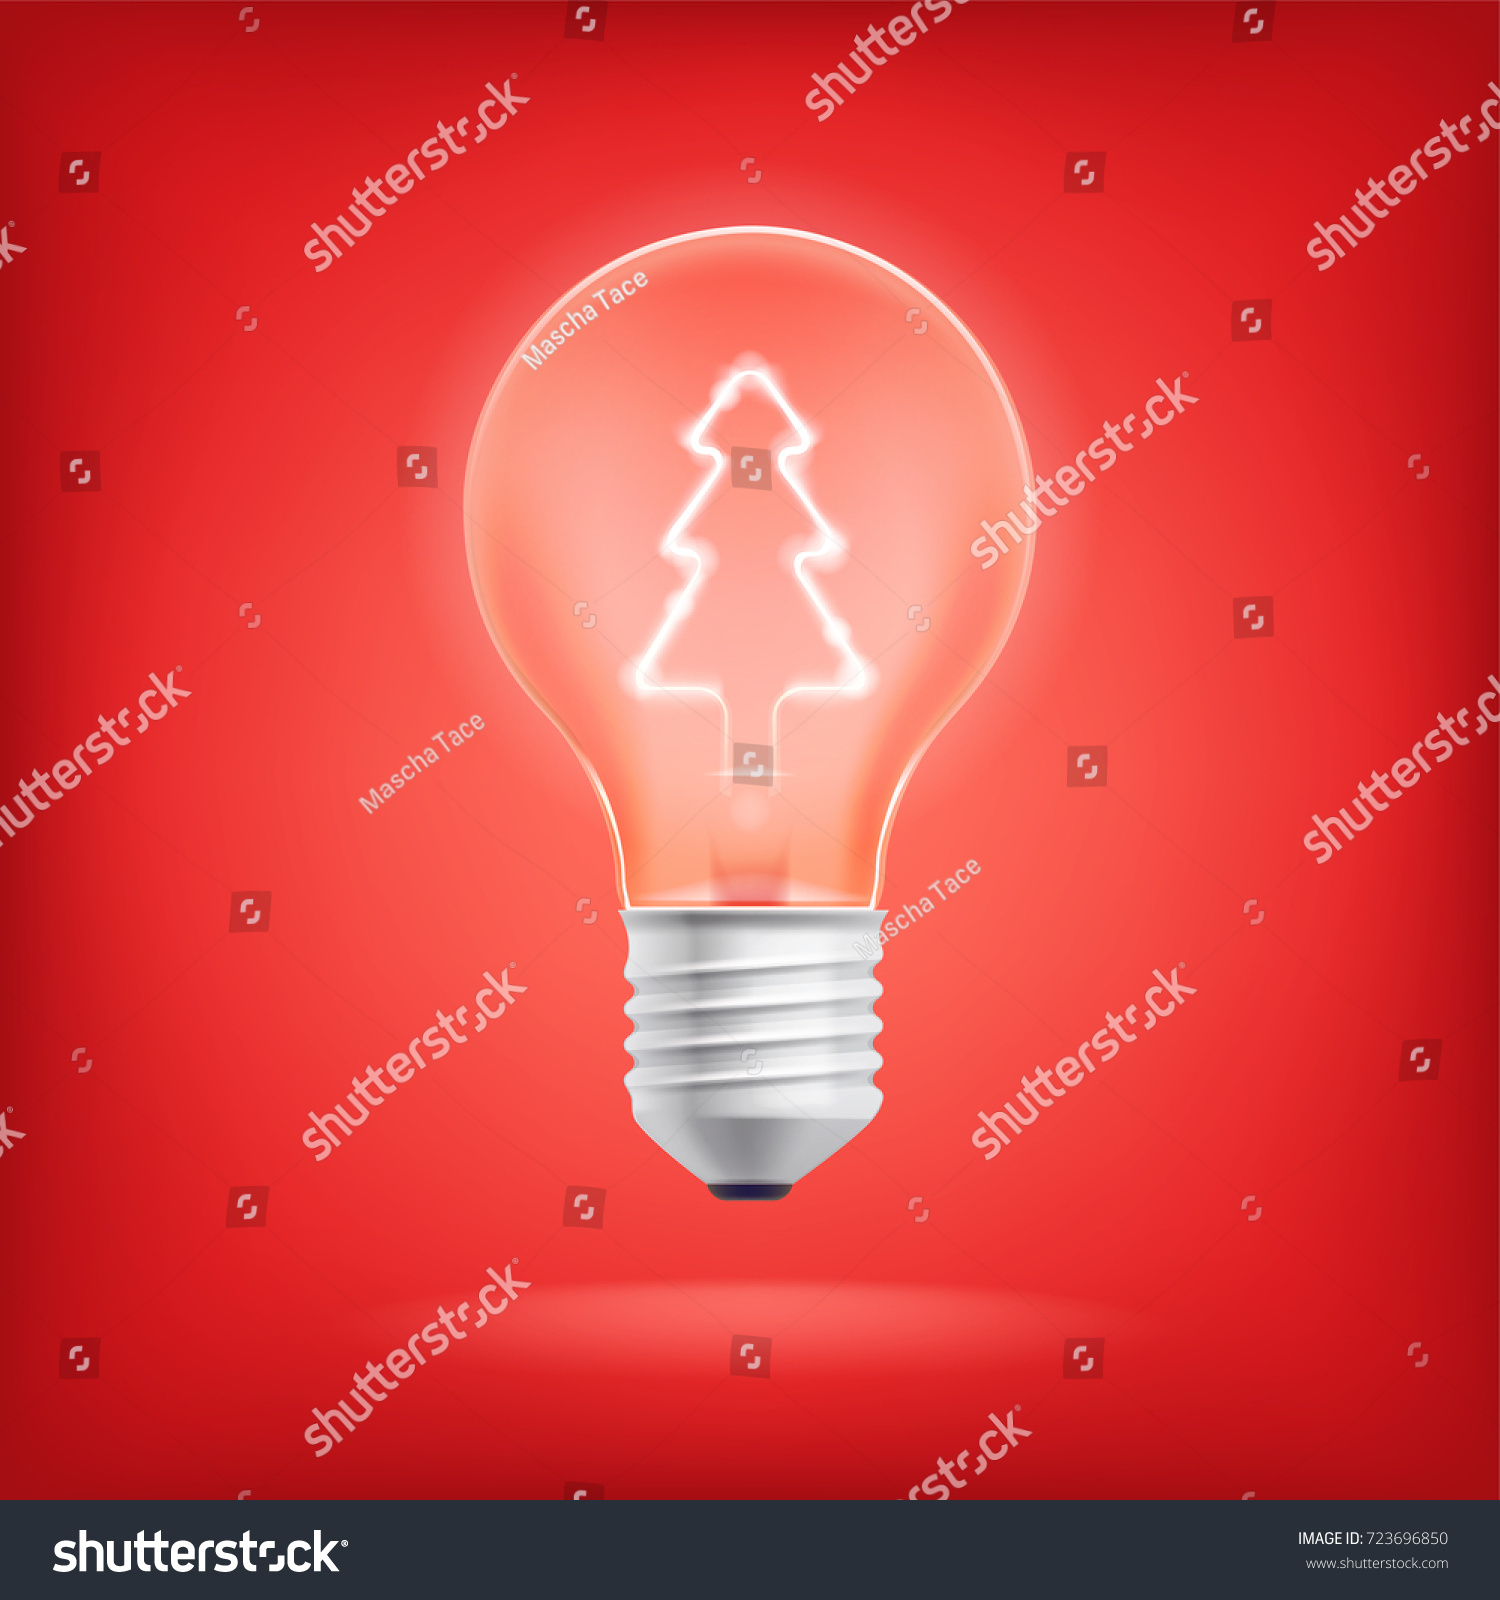 cool vector concept on christmas ideas xmas gifts ideas metaphoric visual light bulb with - Christmas Tree Light Bulb